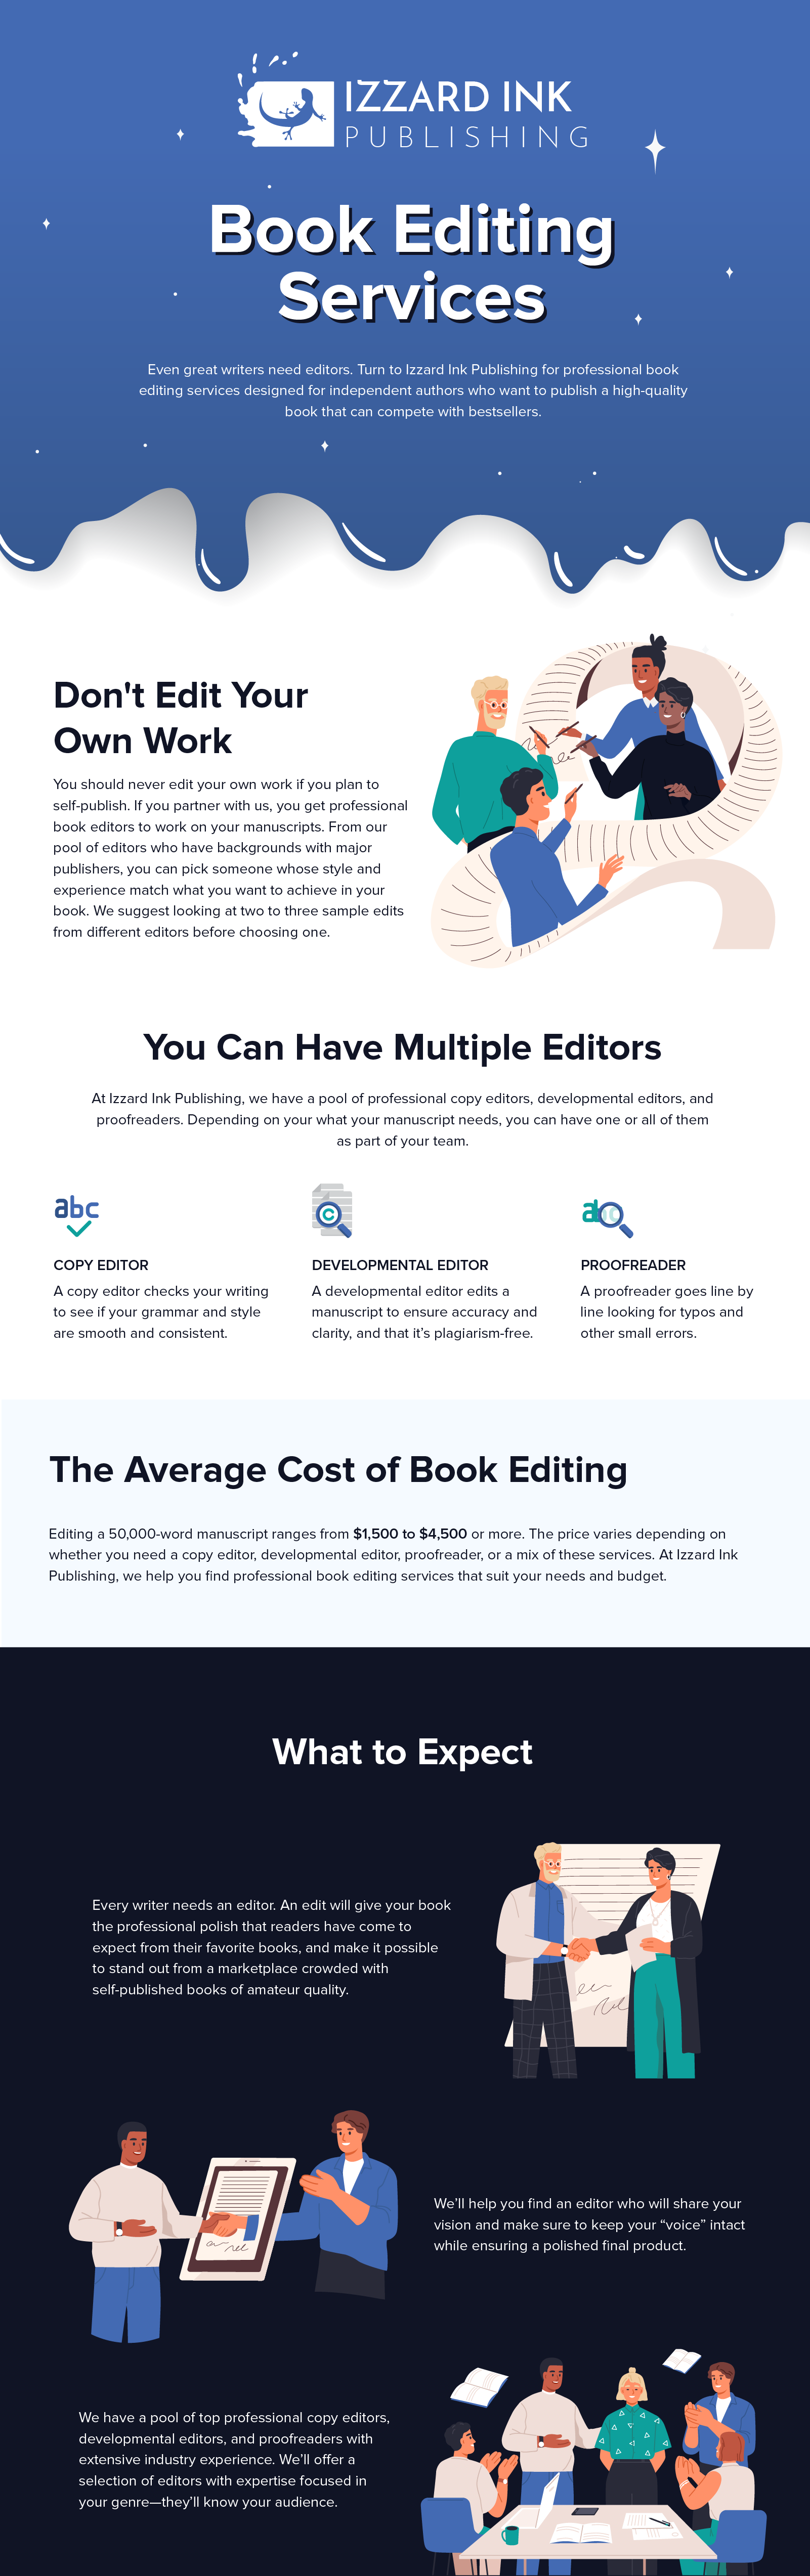 Book Editing Services Infographic